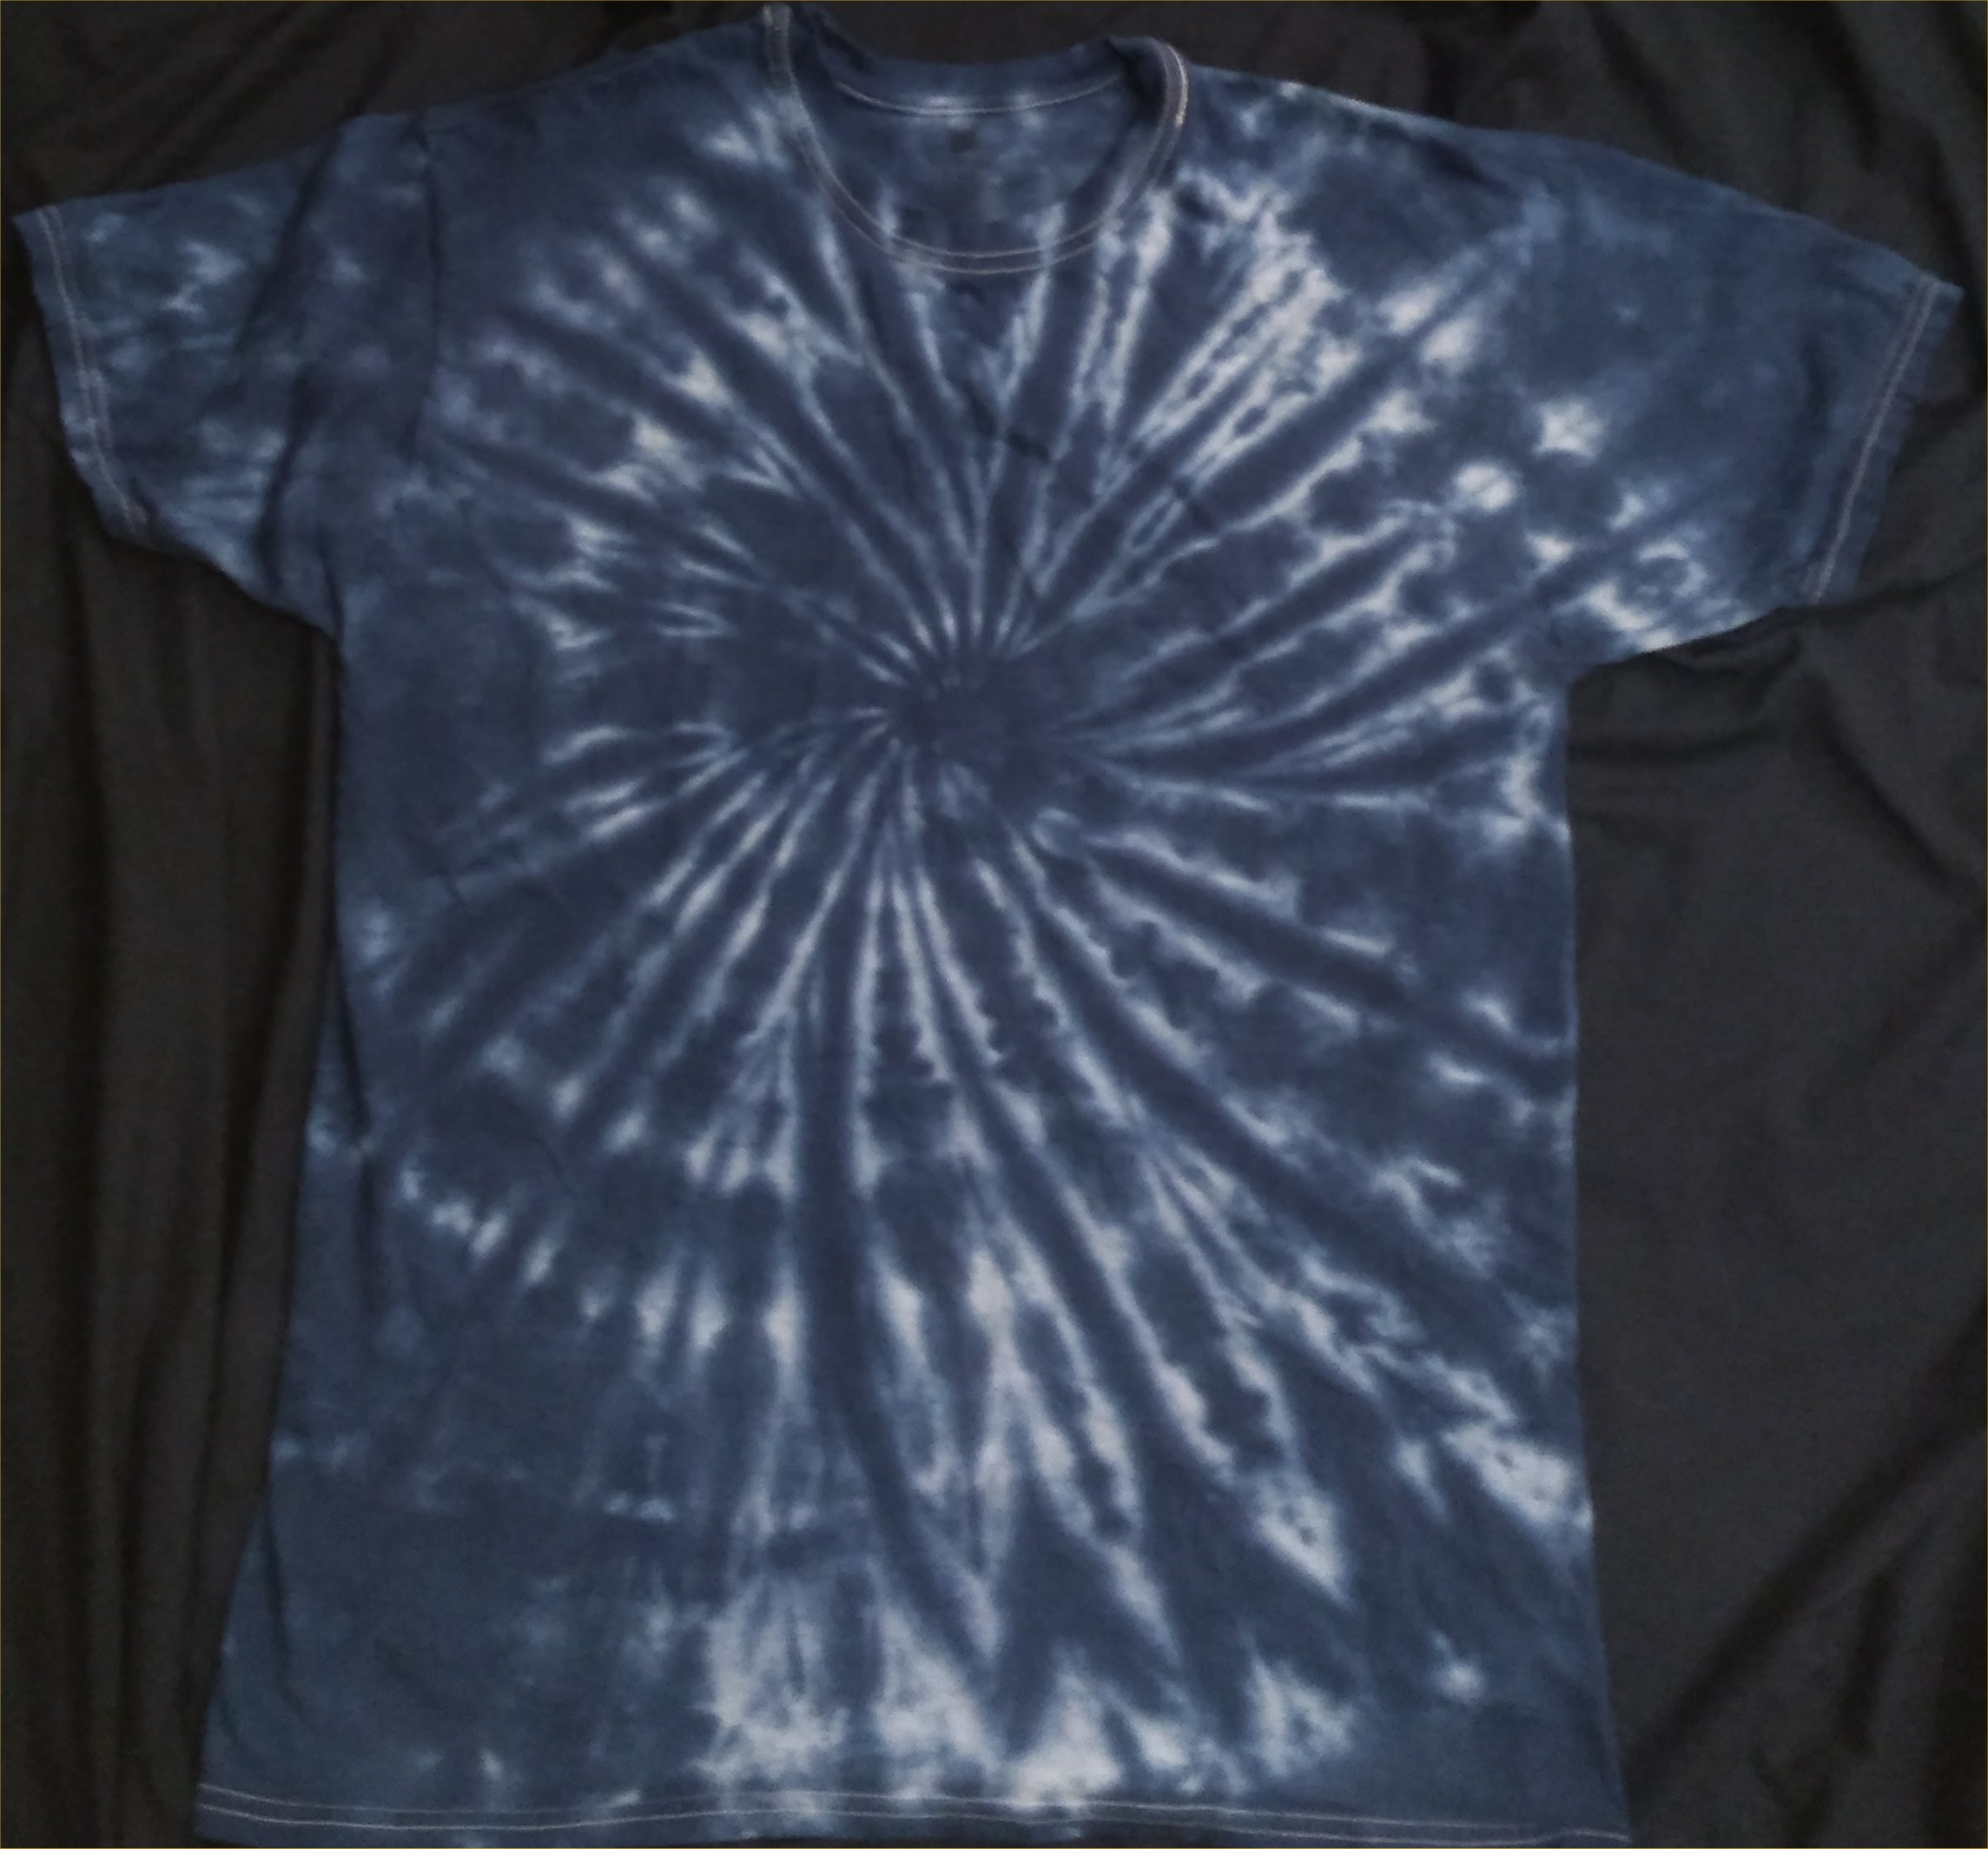 3rd Eye Crystal Gemstone Shirt Size M